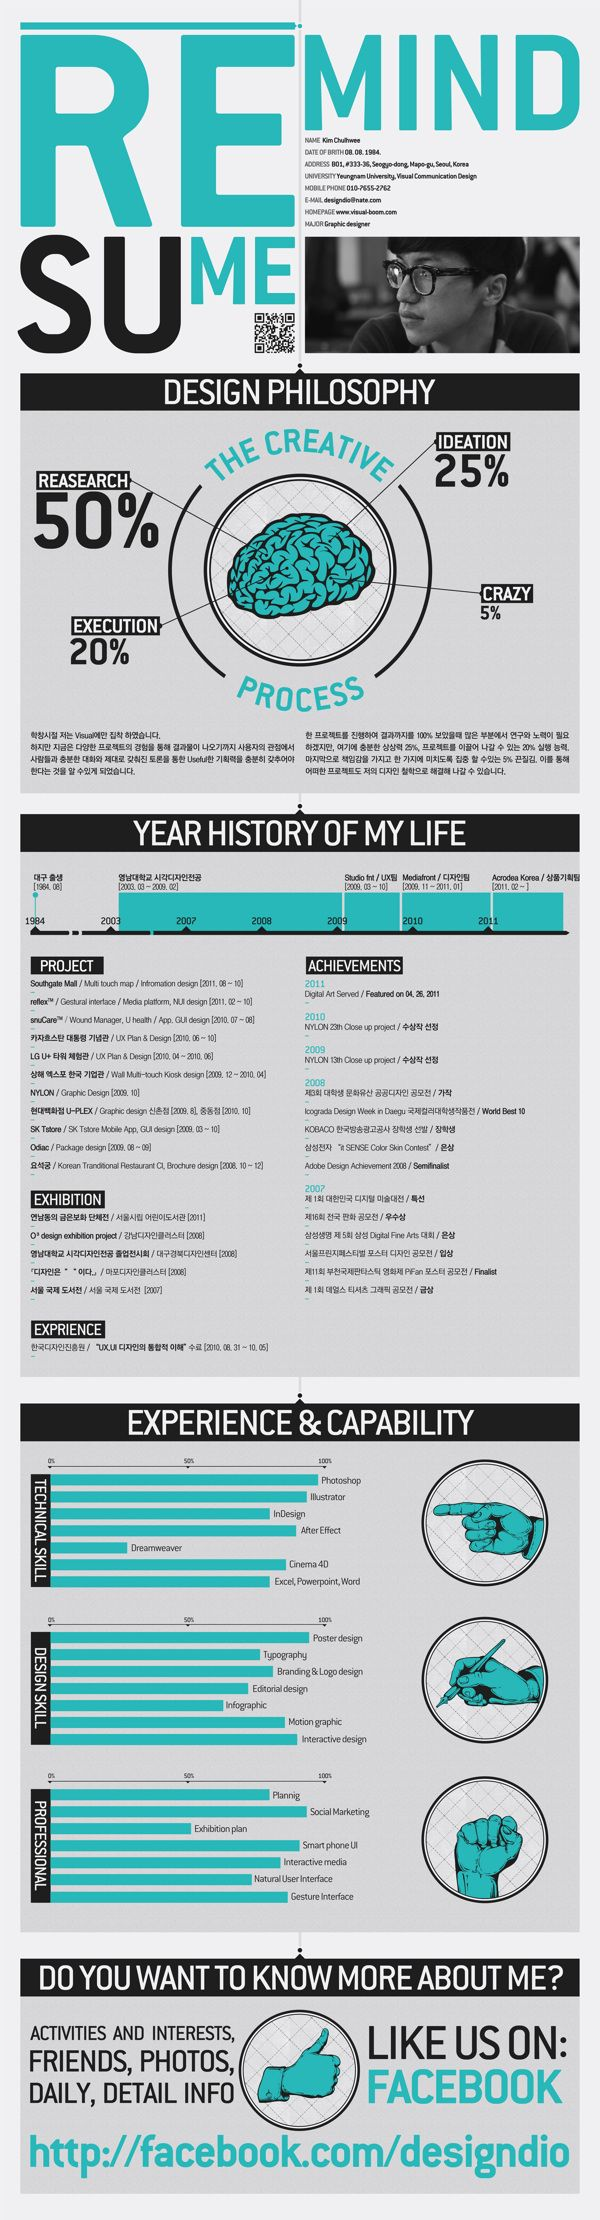 best ideas about cv modelos infographic self promotion 2011 on behance